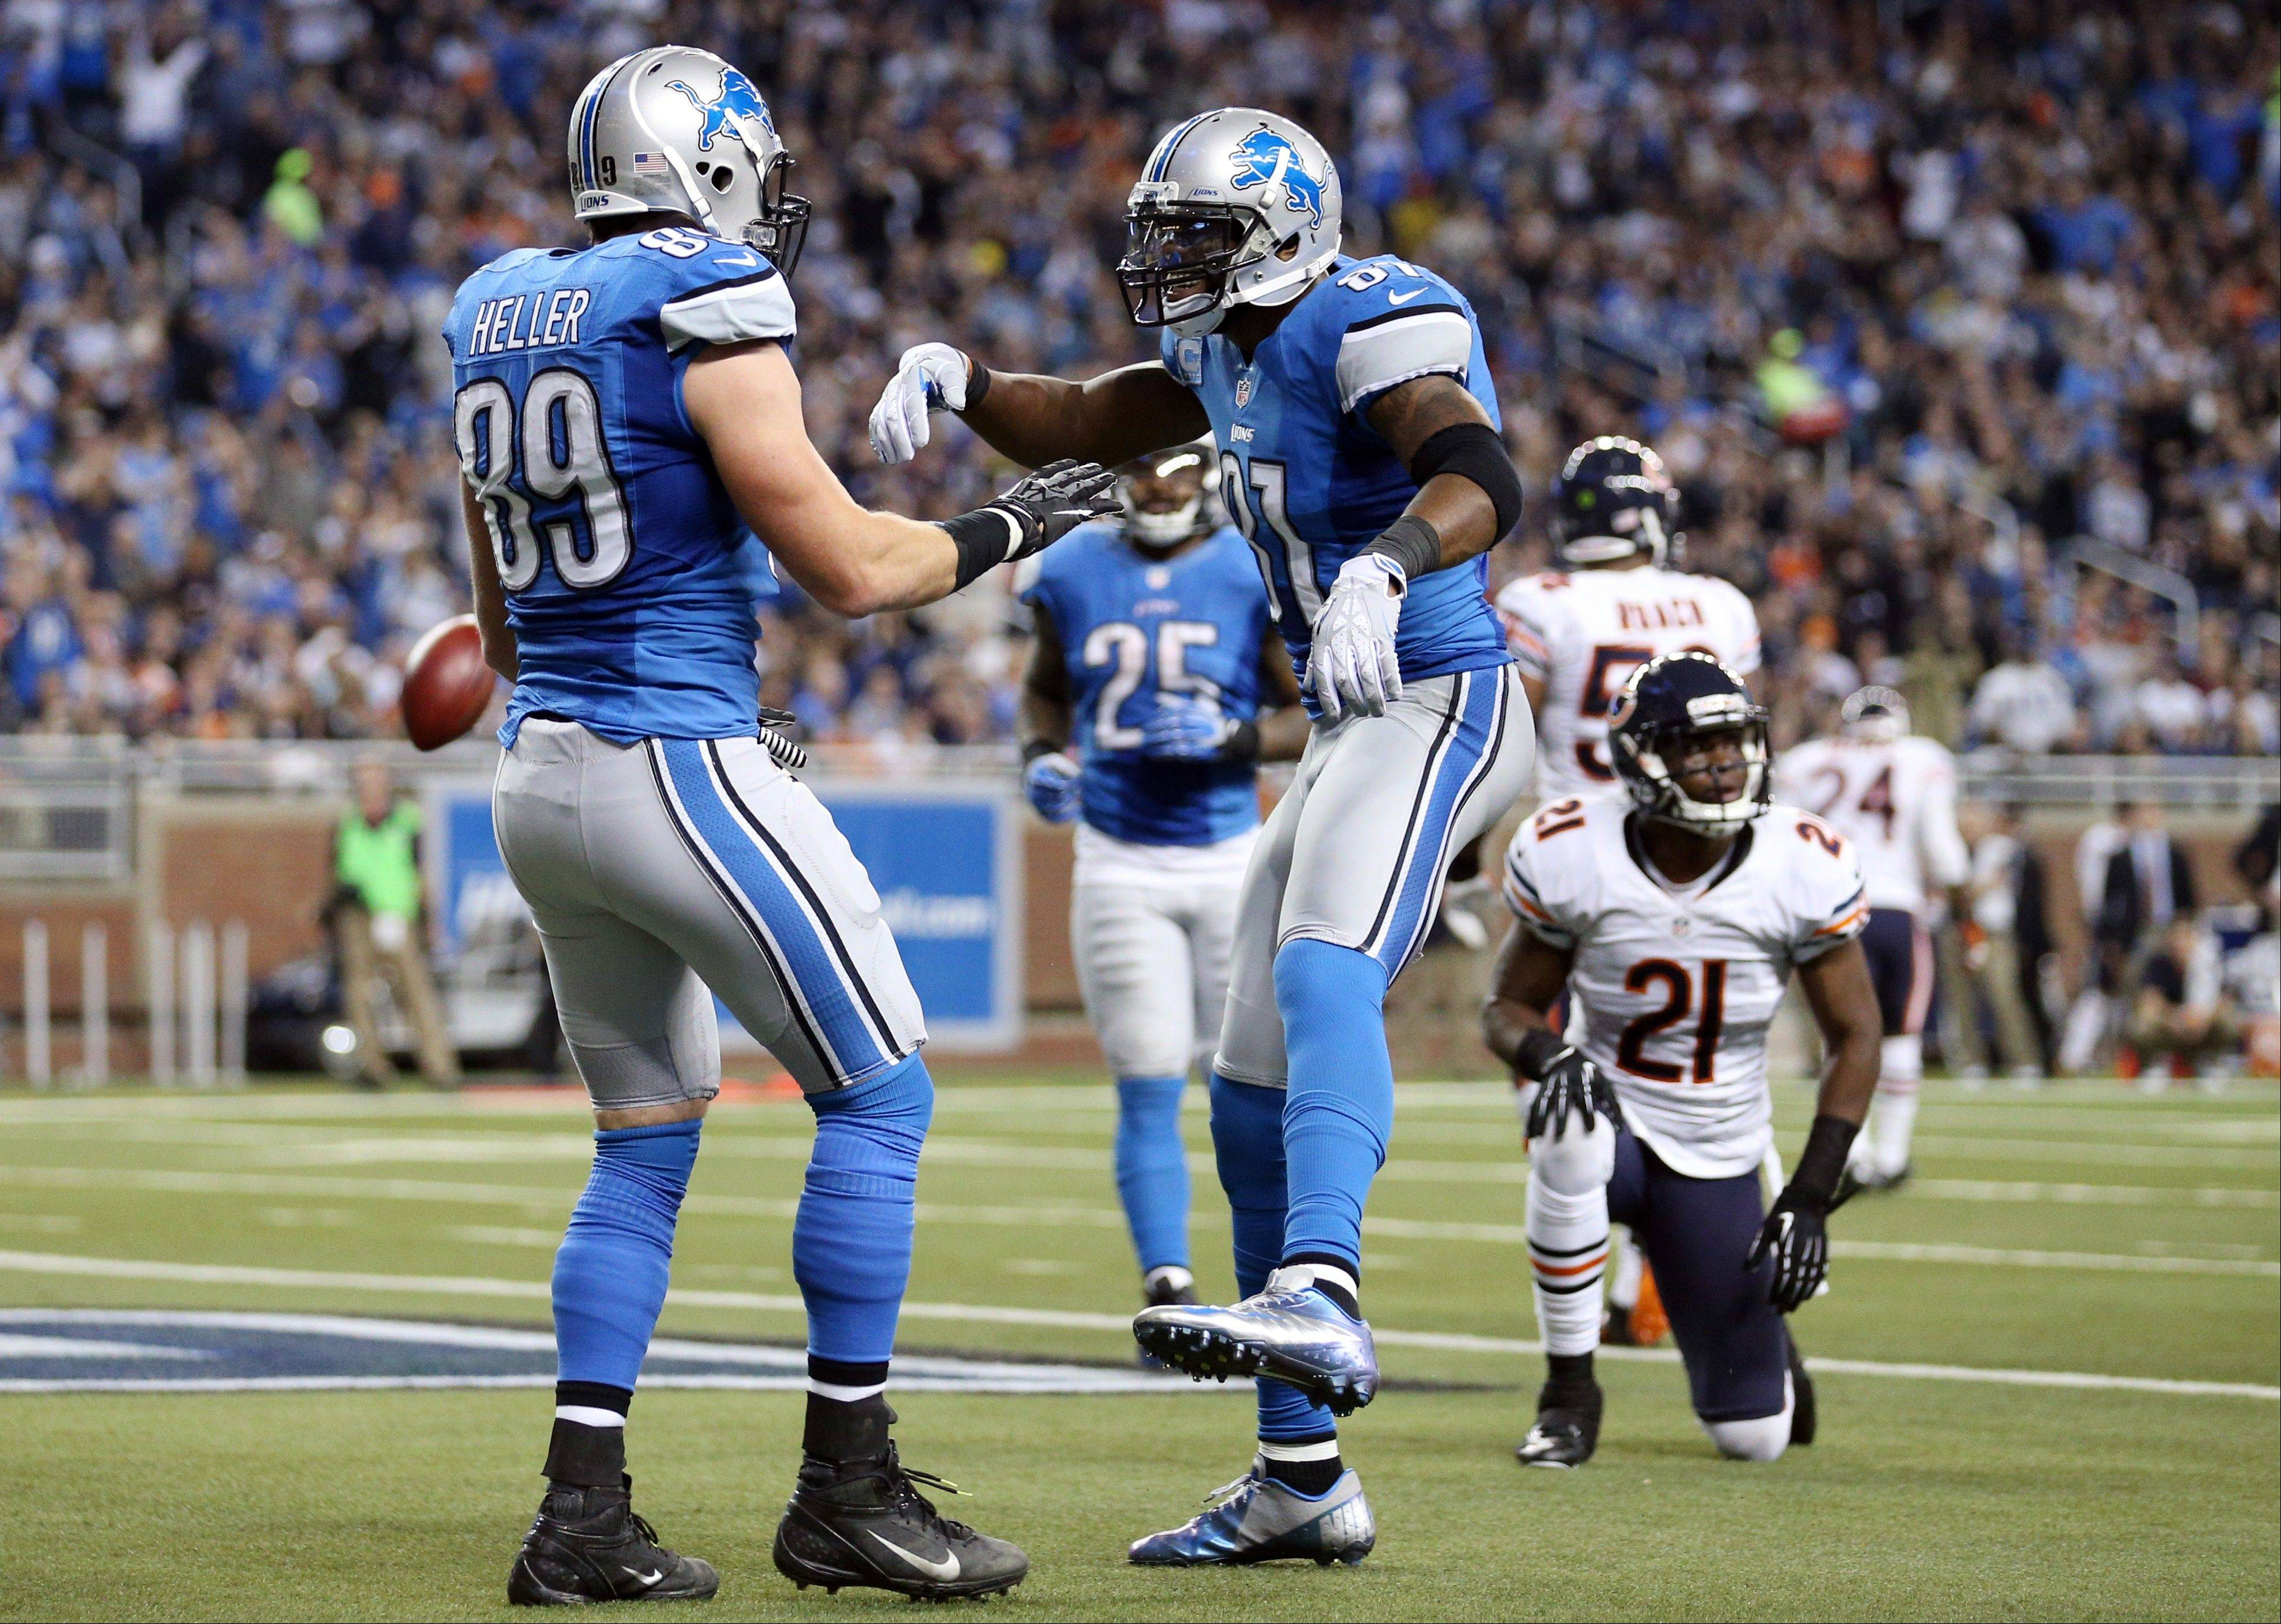 Detroit Lions tight end Will Heller (89) is congratulated by teammate wide receiver Calvin Johnson (81) after his touchdown during the third quarter.